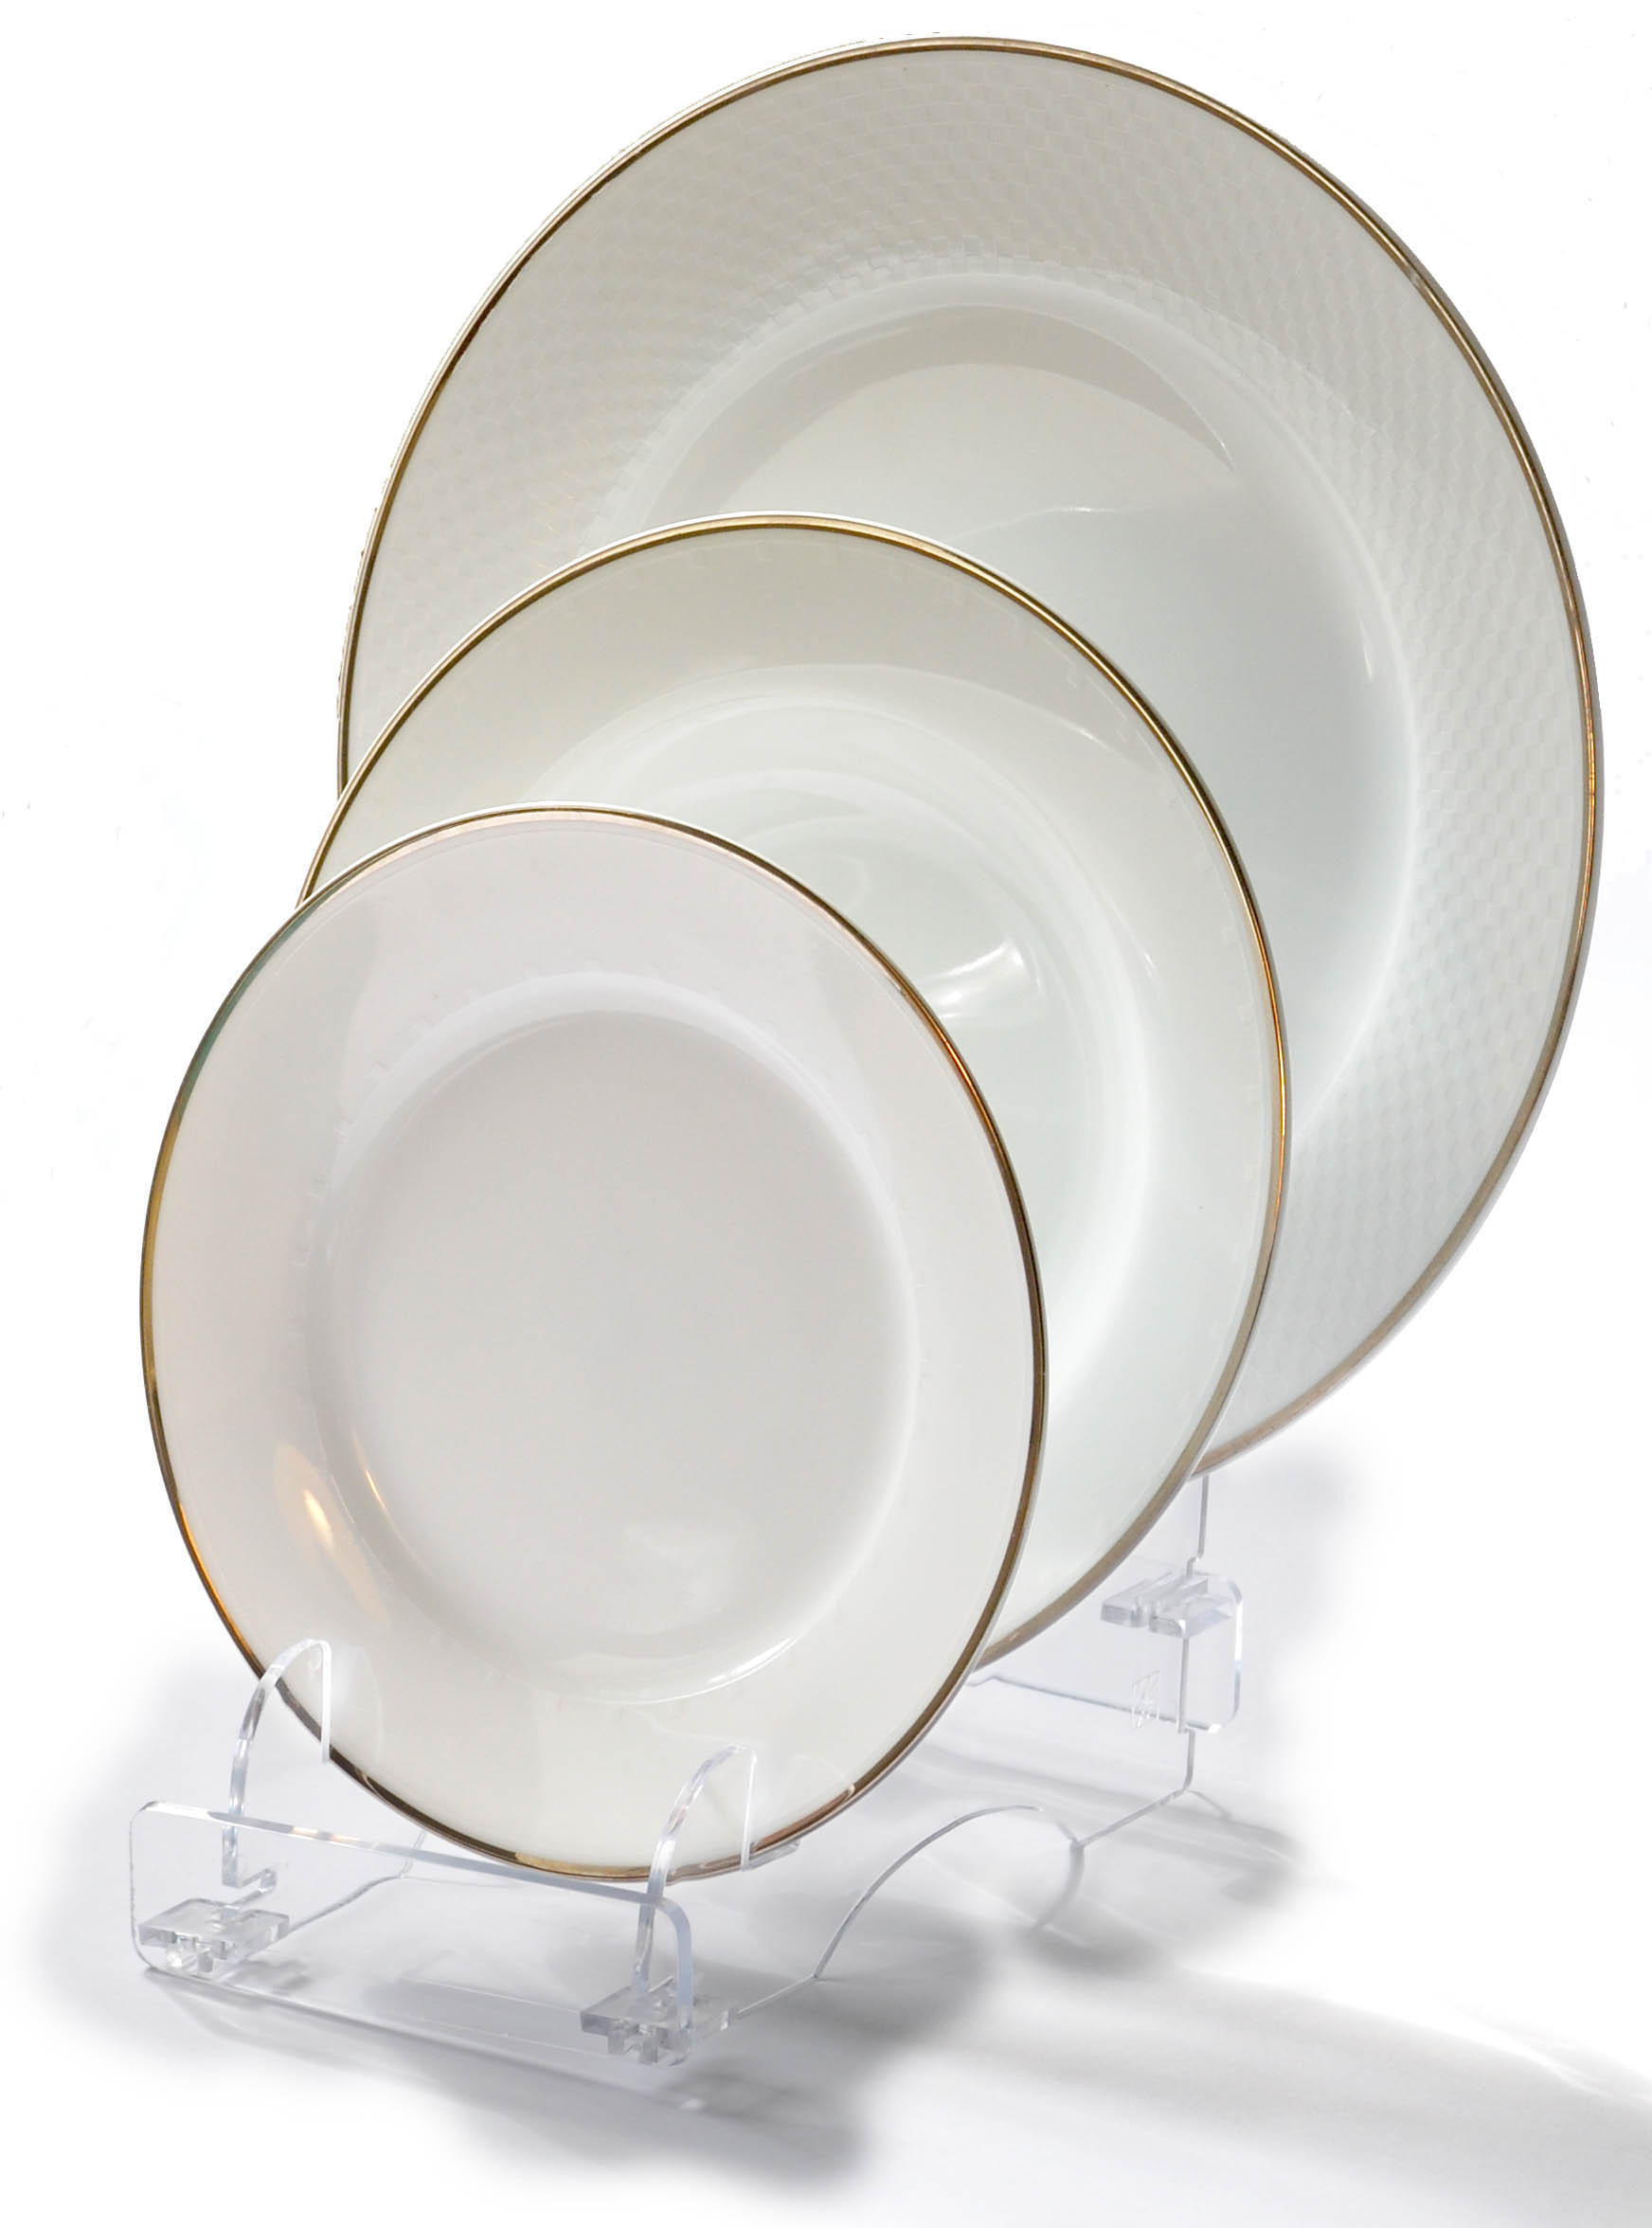 Dinnerware Display Stands Plate Display Ideas 30 | websiteformore.info